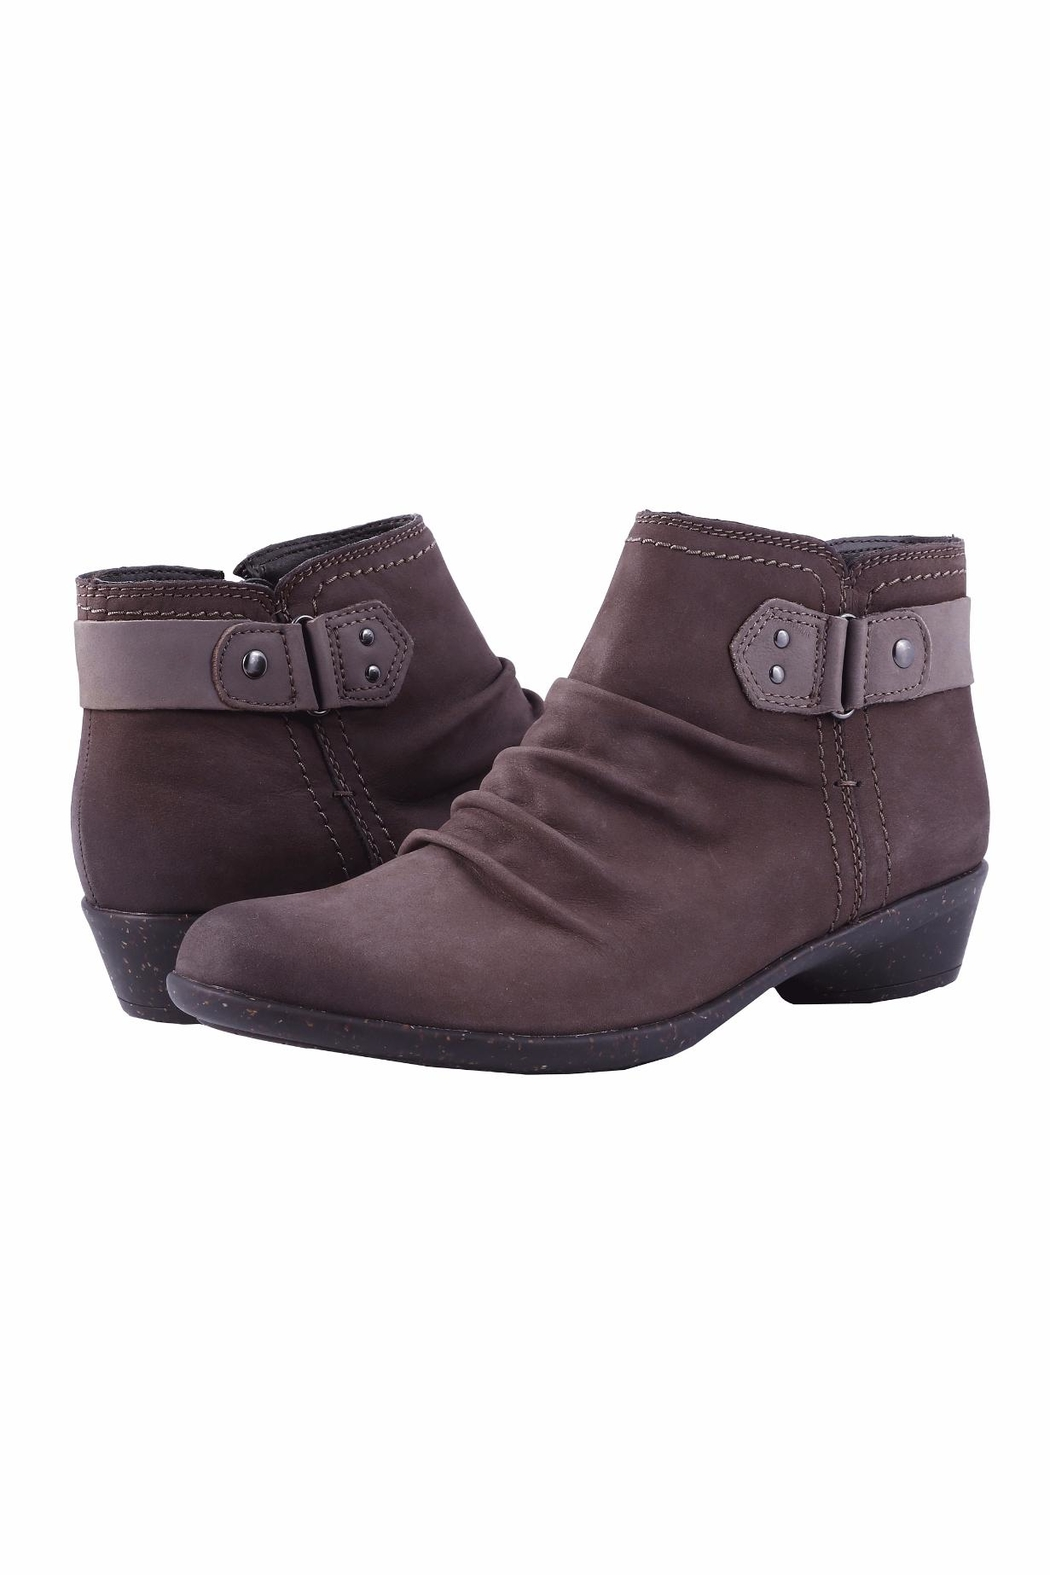 Cobb Hill Nicole Ankle Booties - Front Full Image